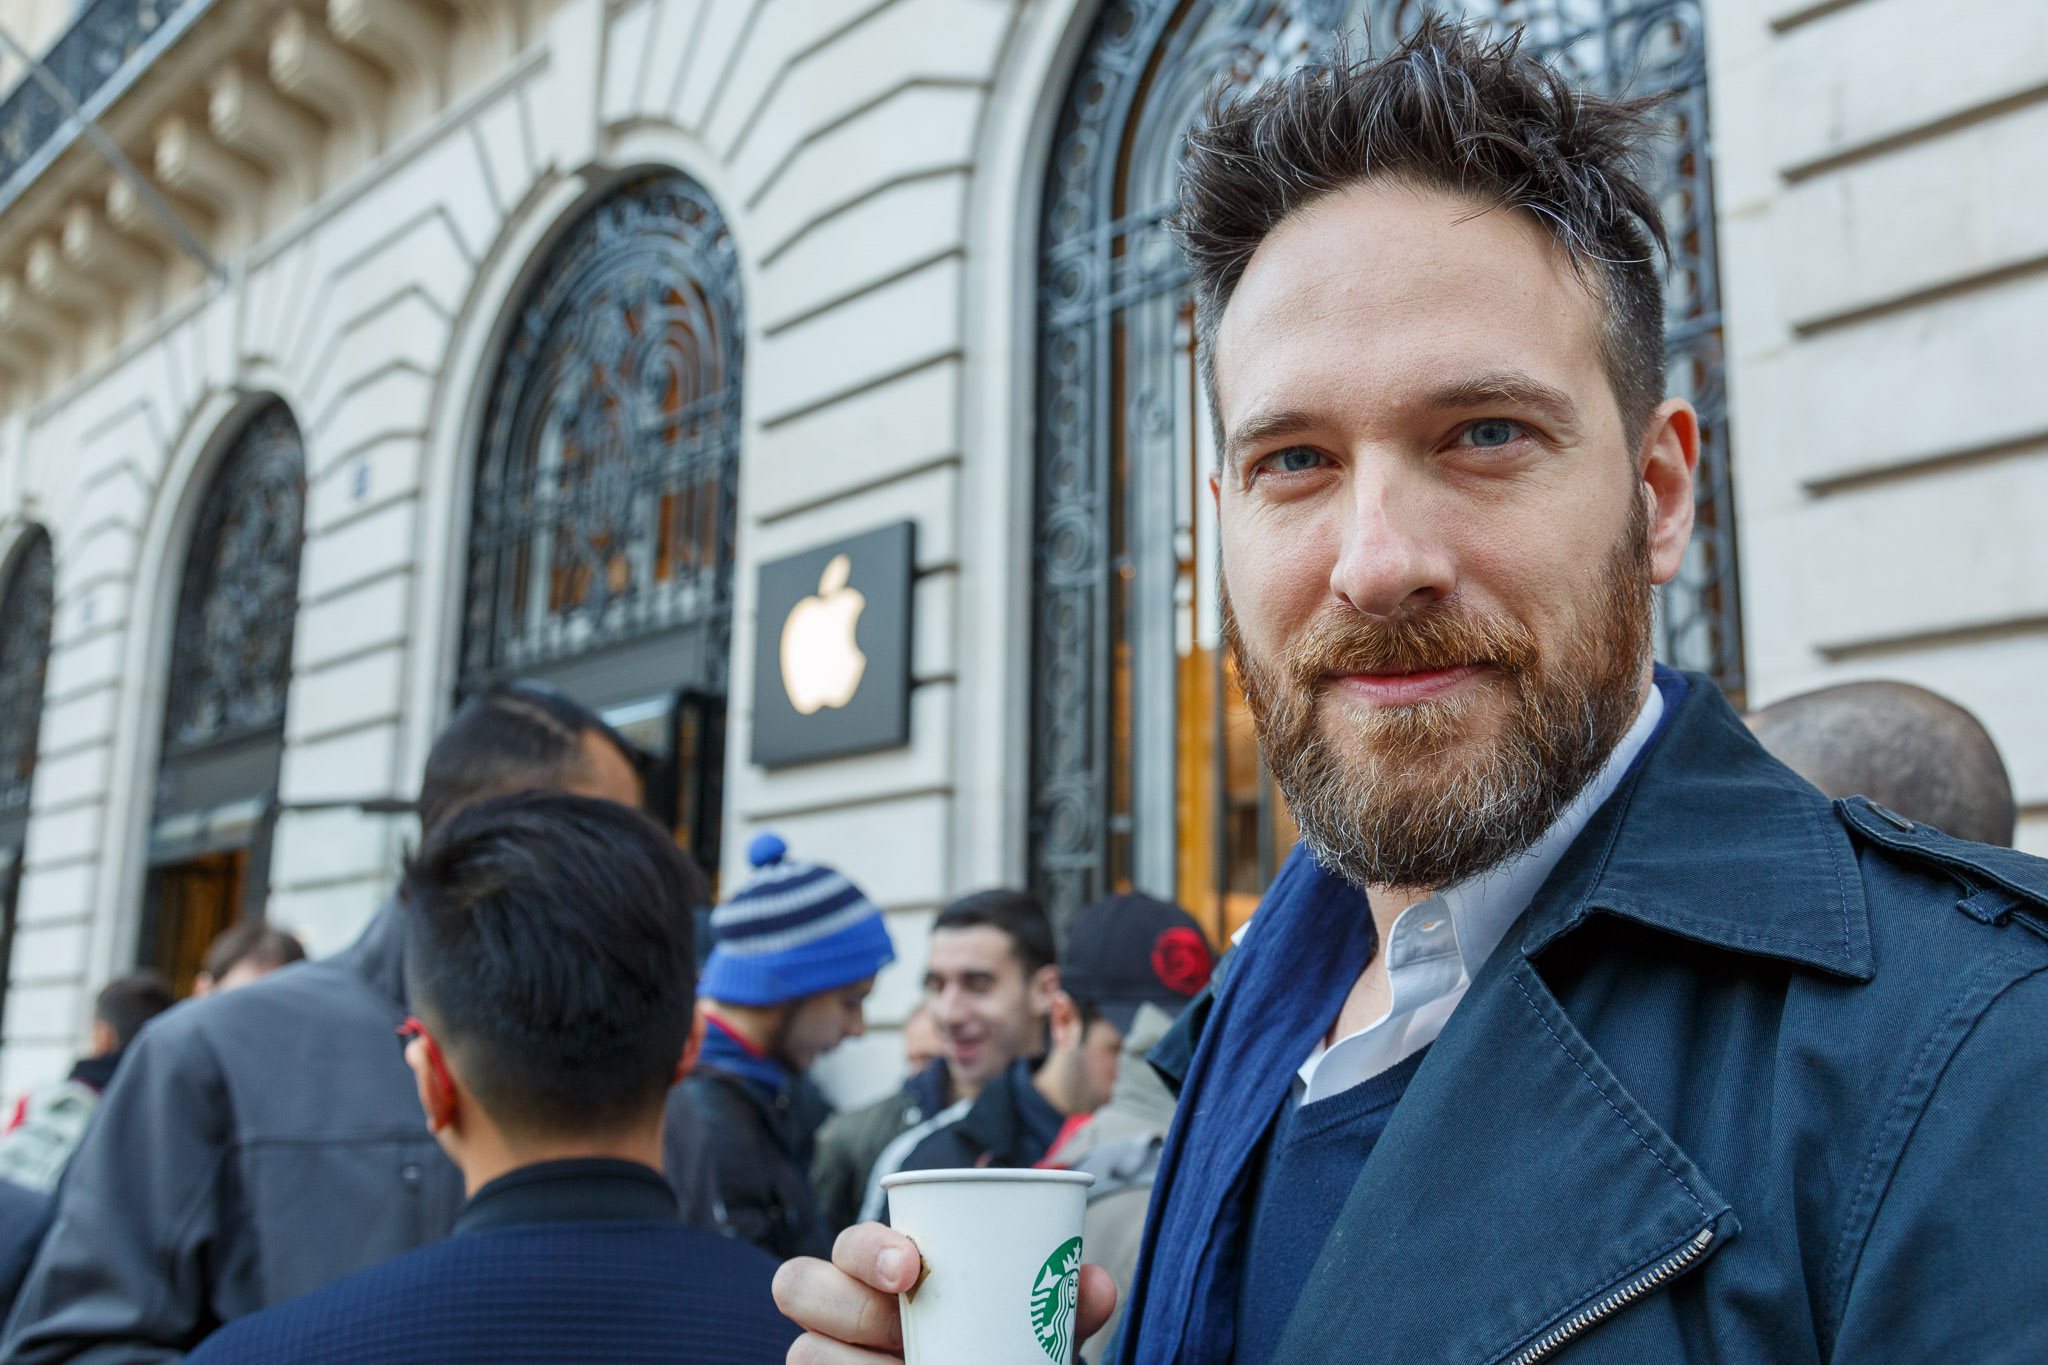 Manuel Cimarosti, a 38-year-old Parisian who has owned every iPhone since the first, enjoys the spectacle of iPhone launches. He's happy to reserve a place in line on the Internet though, which meant he had to wait only a half hour in line instead of the six hours he queued for his iPhone 5S.